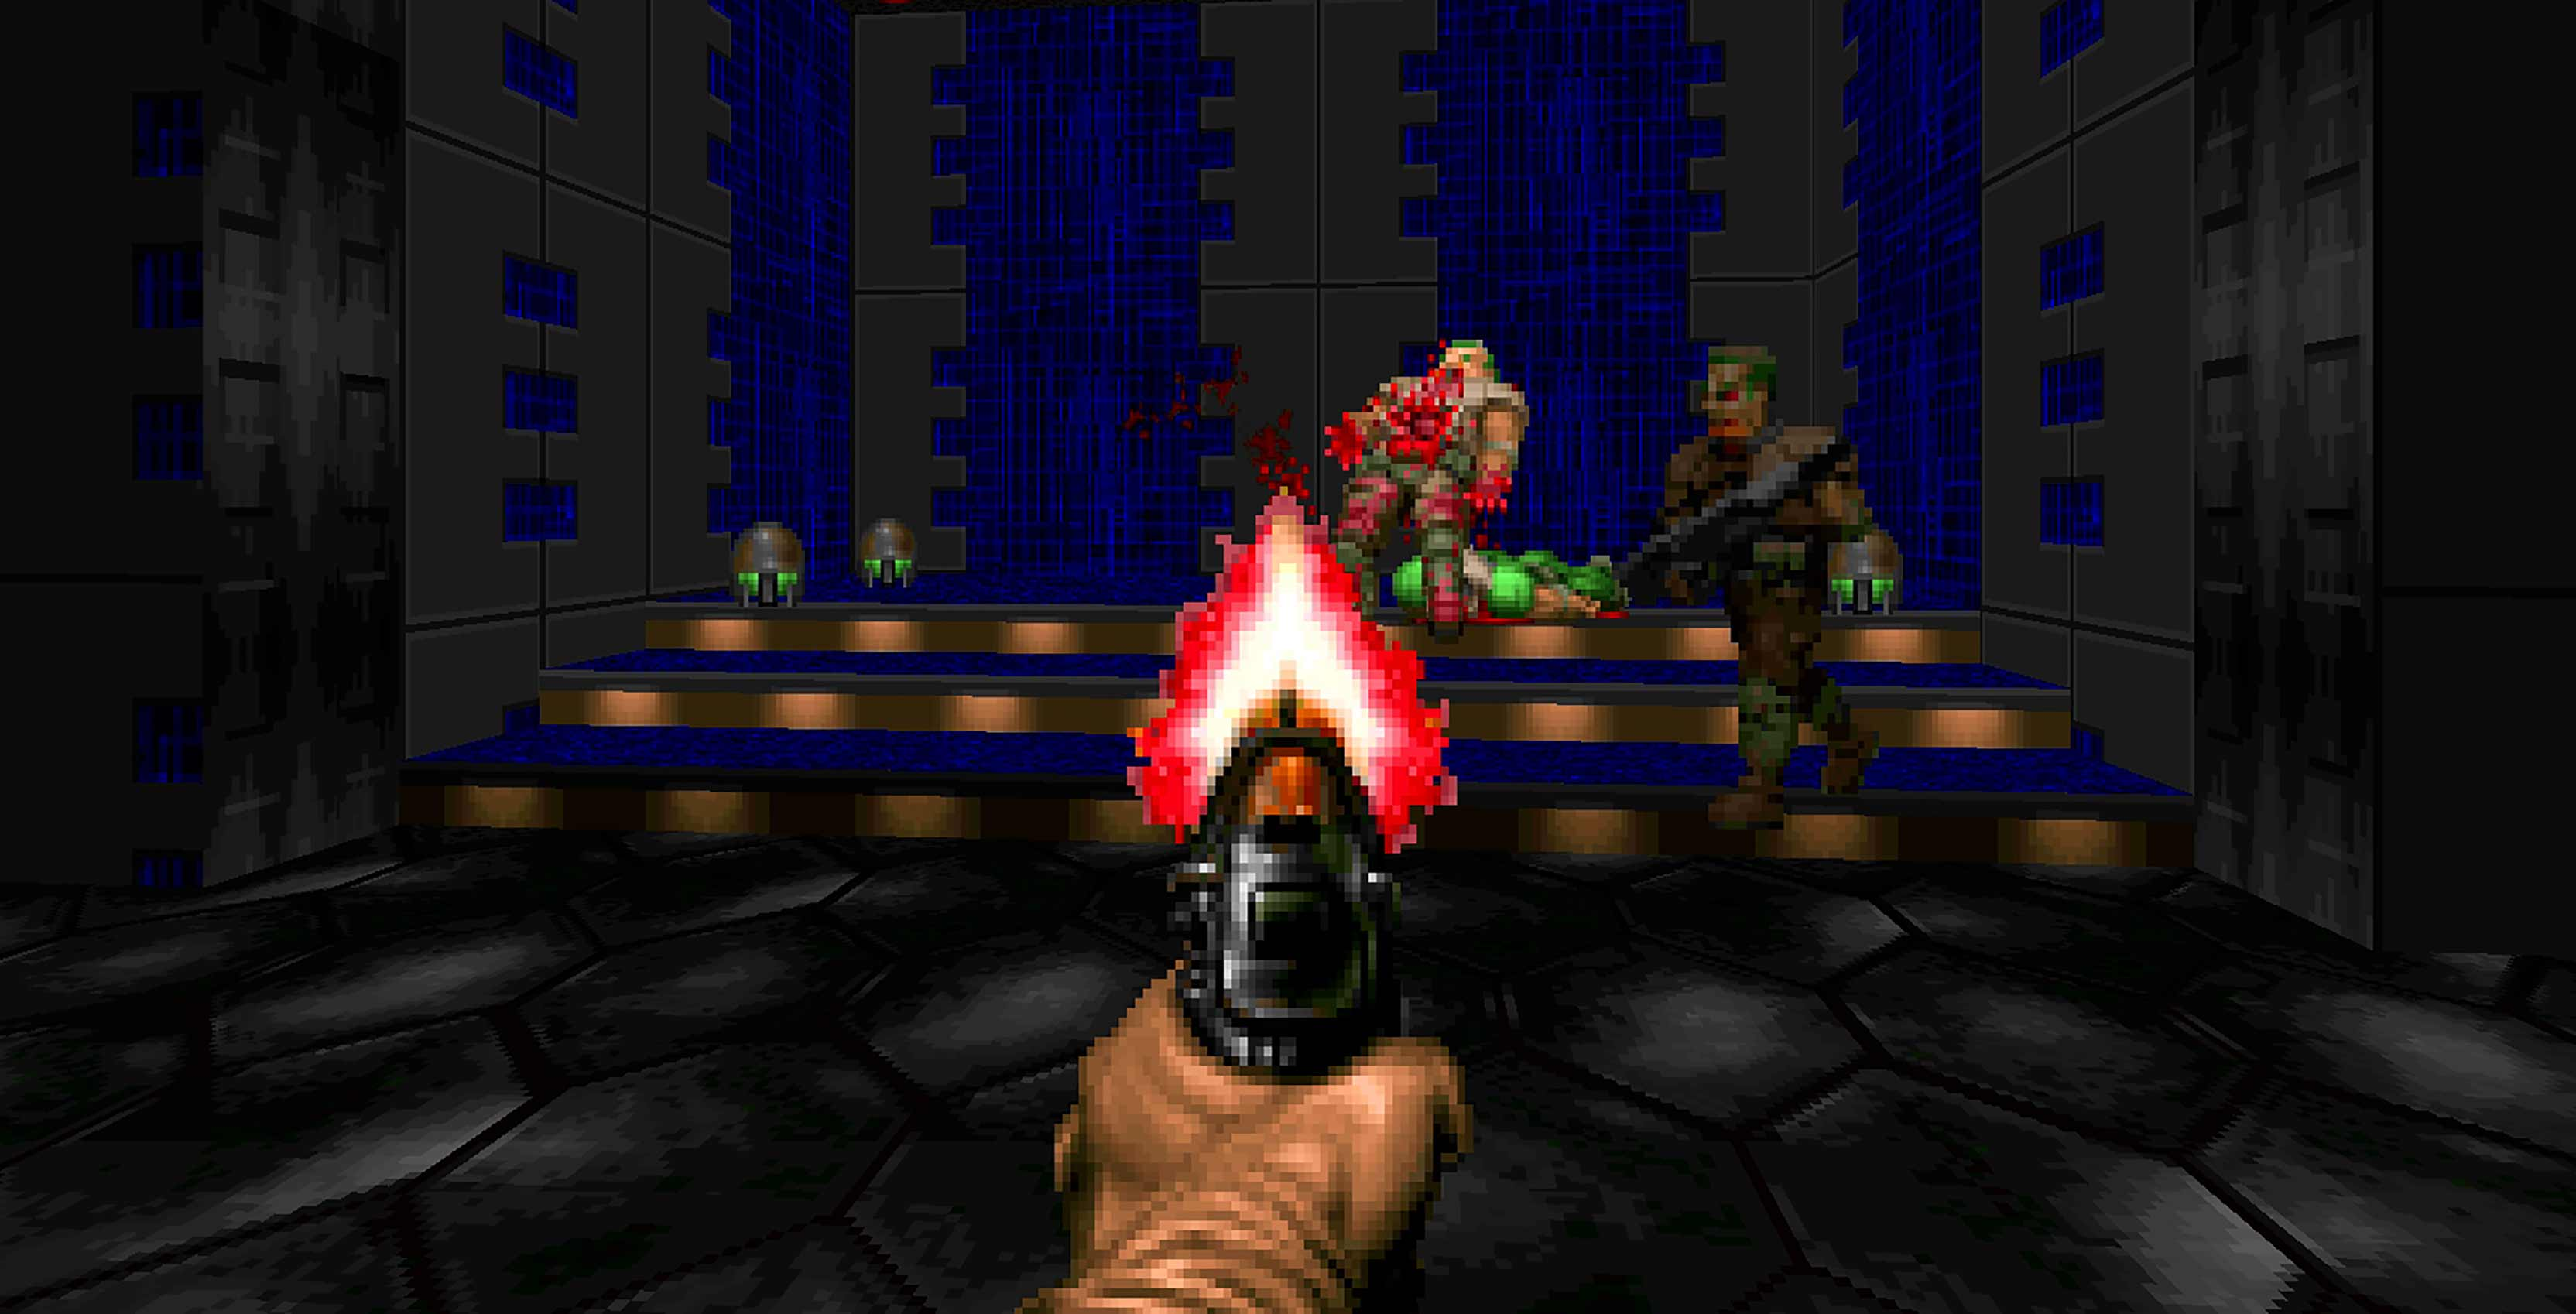 Original 'Doom' trilogy makes its way to Android, iOS